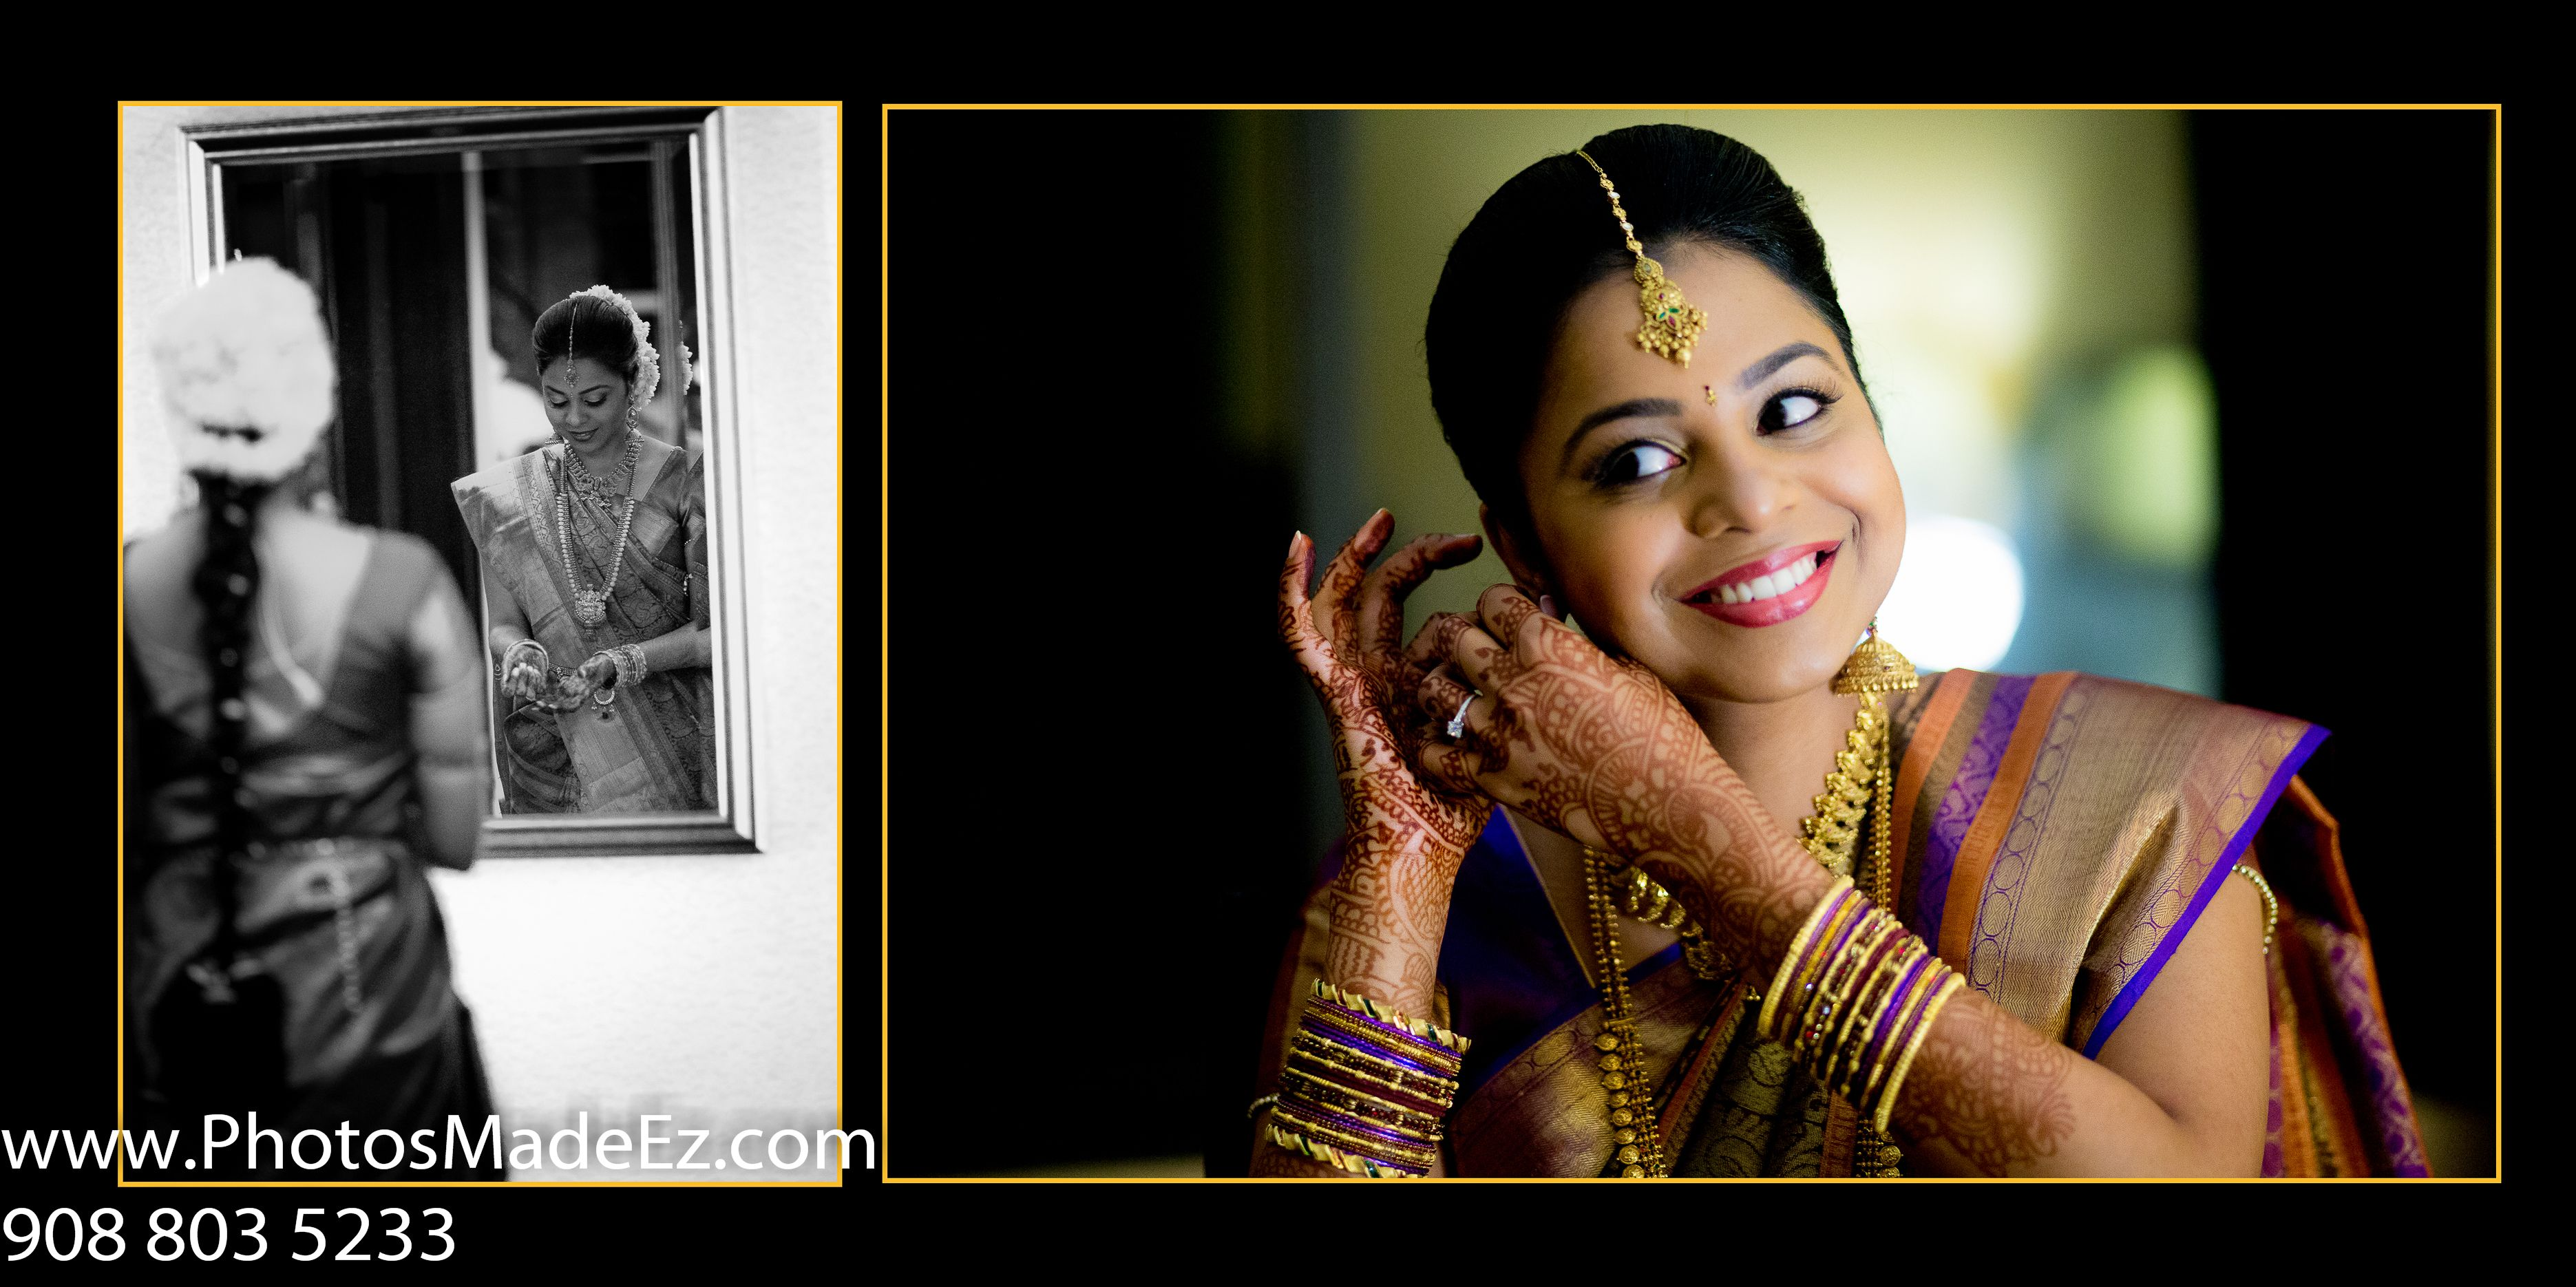 S Indian Bride Getting Ready In South Wedding Photos NJ By PhotosMadeEz With